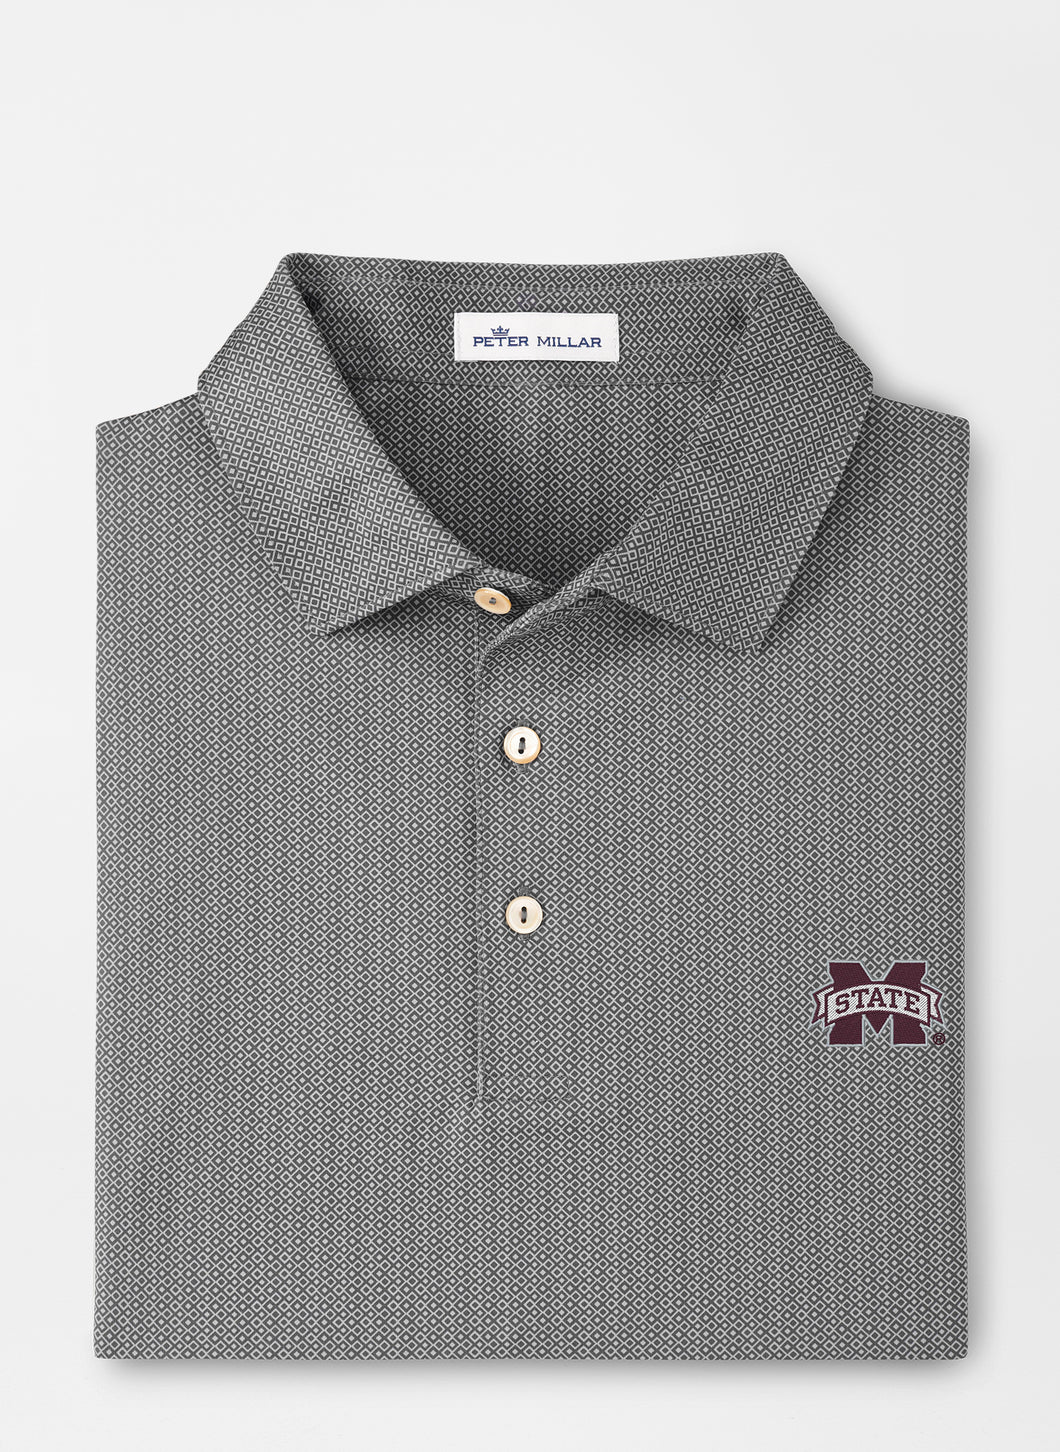 Peter Millar MSU Mississippi State Jamm Printed Performance Polo: Iron